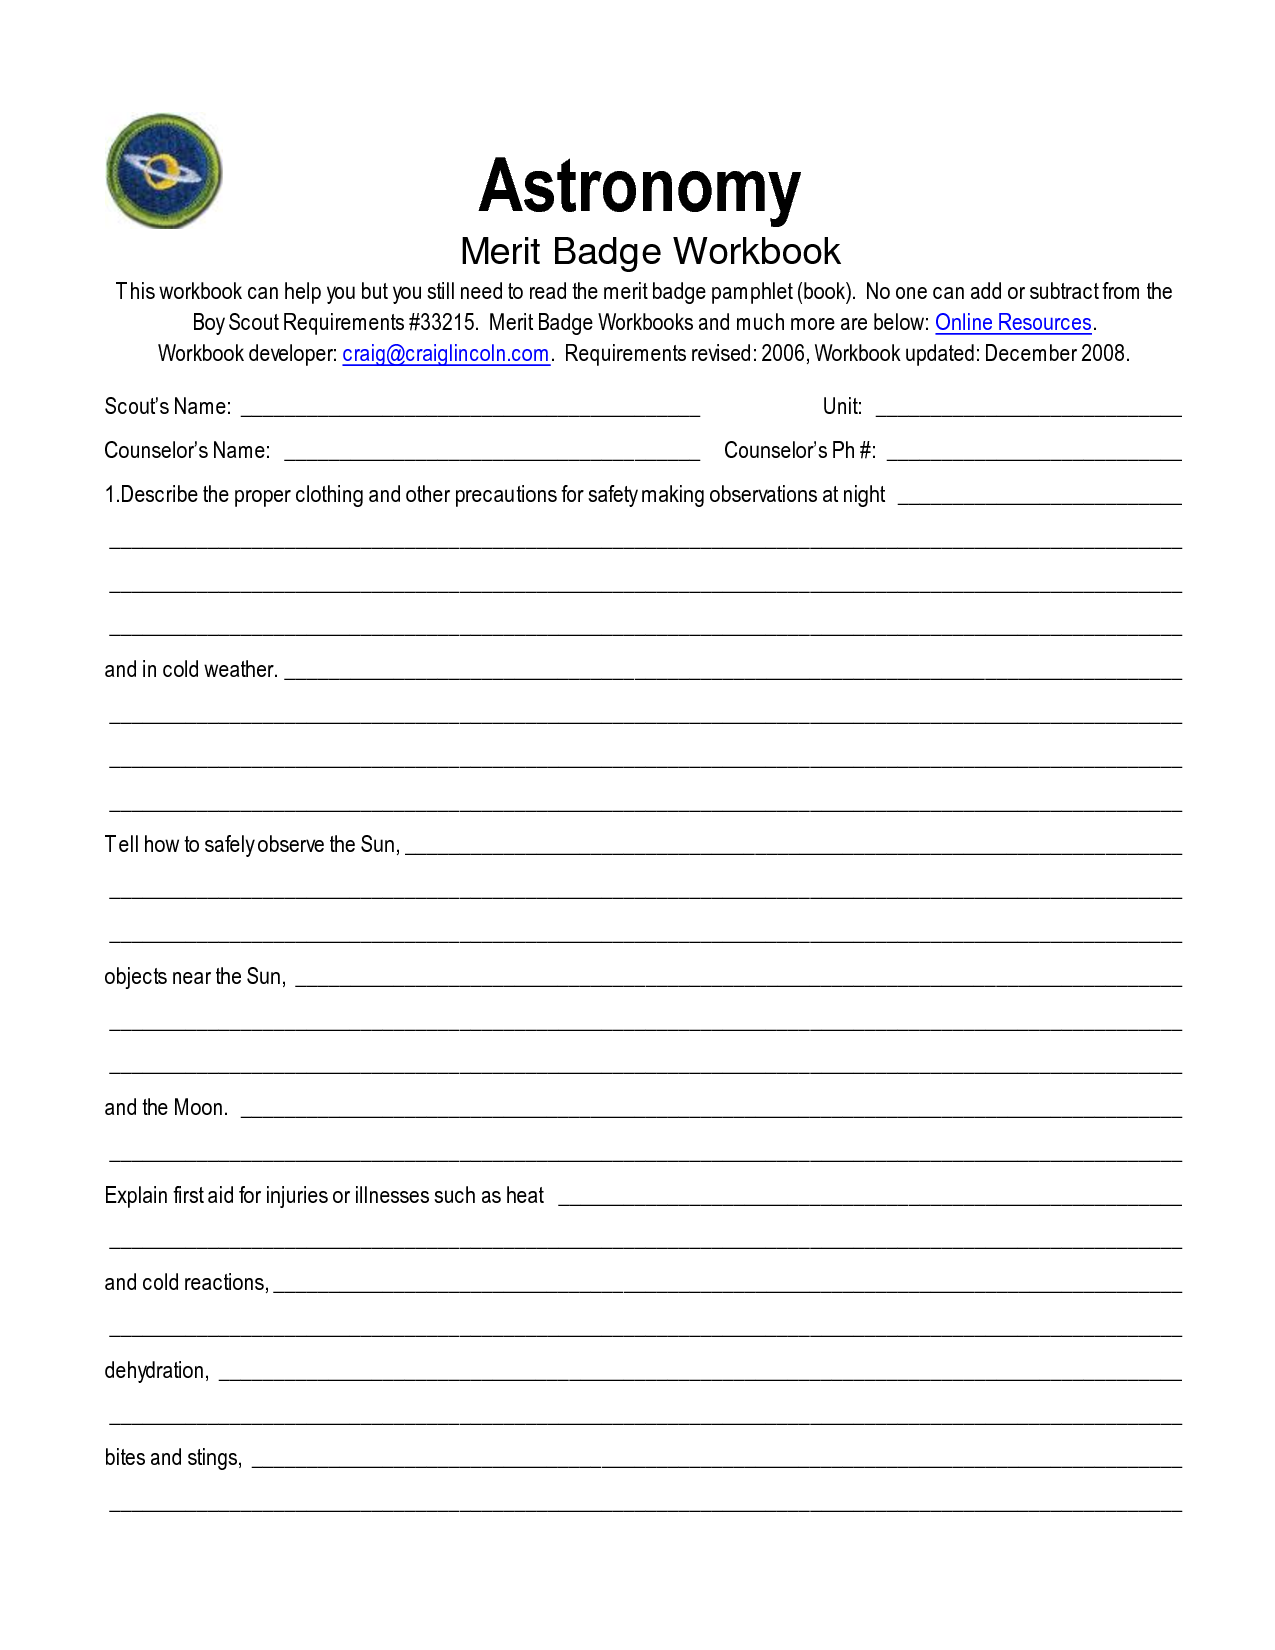 Astronomy Merit Badge Worksheet